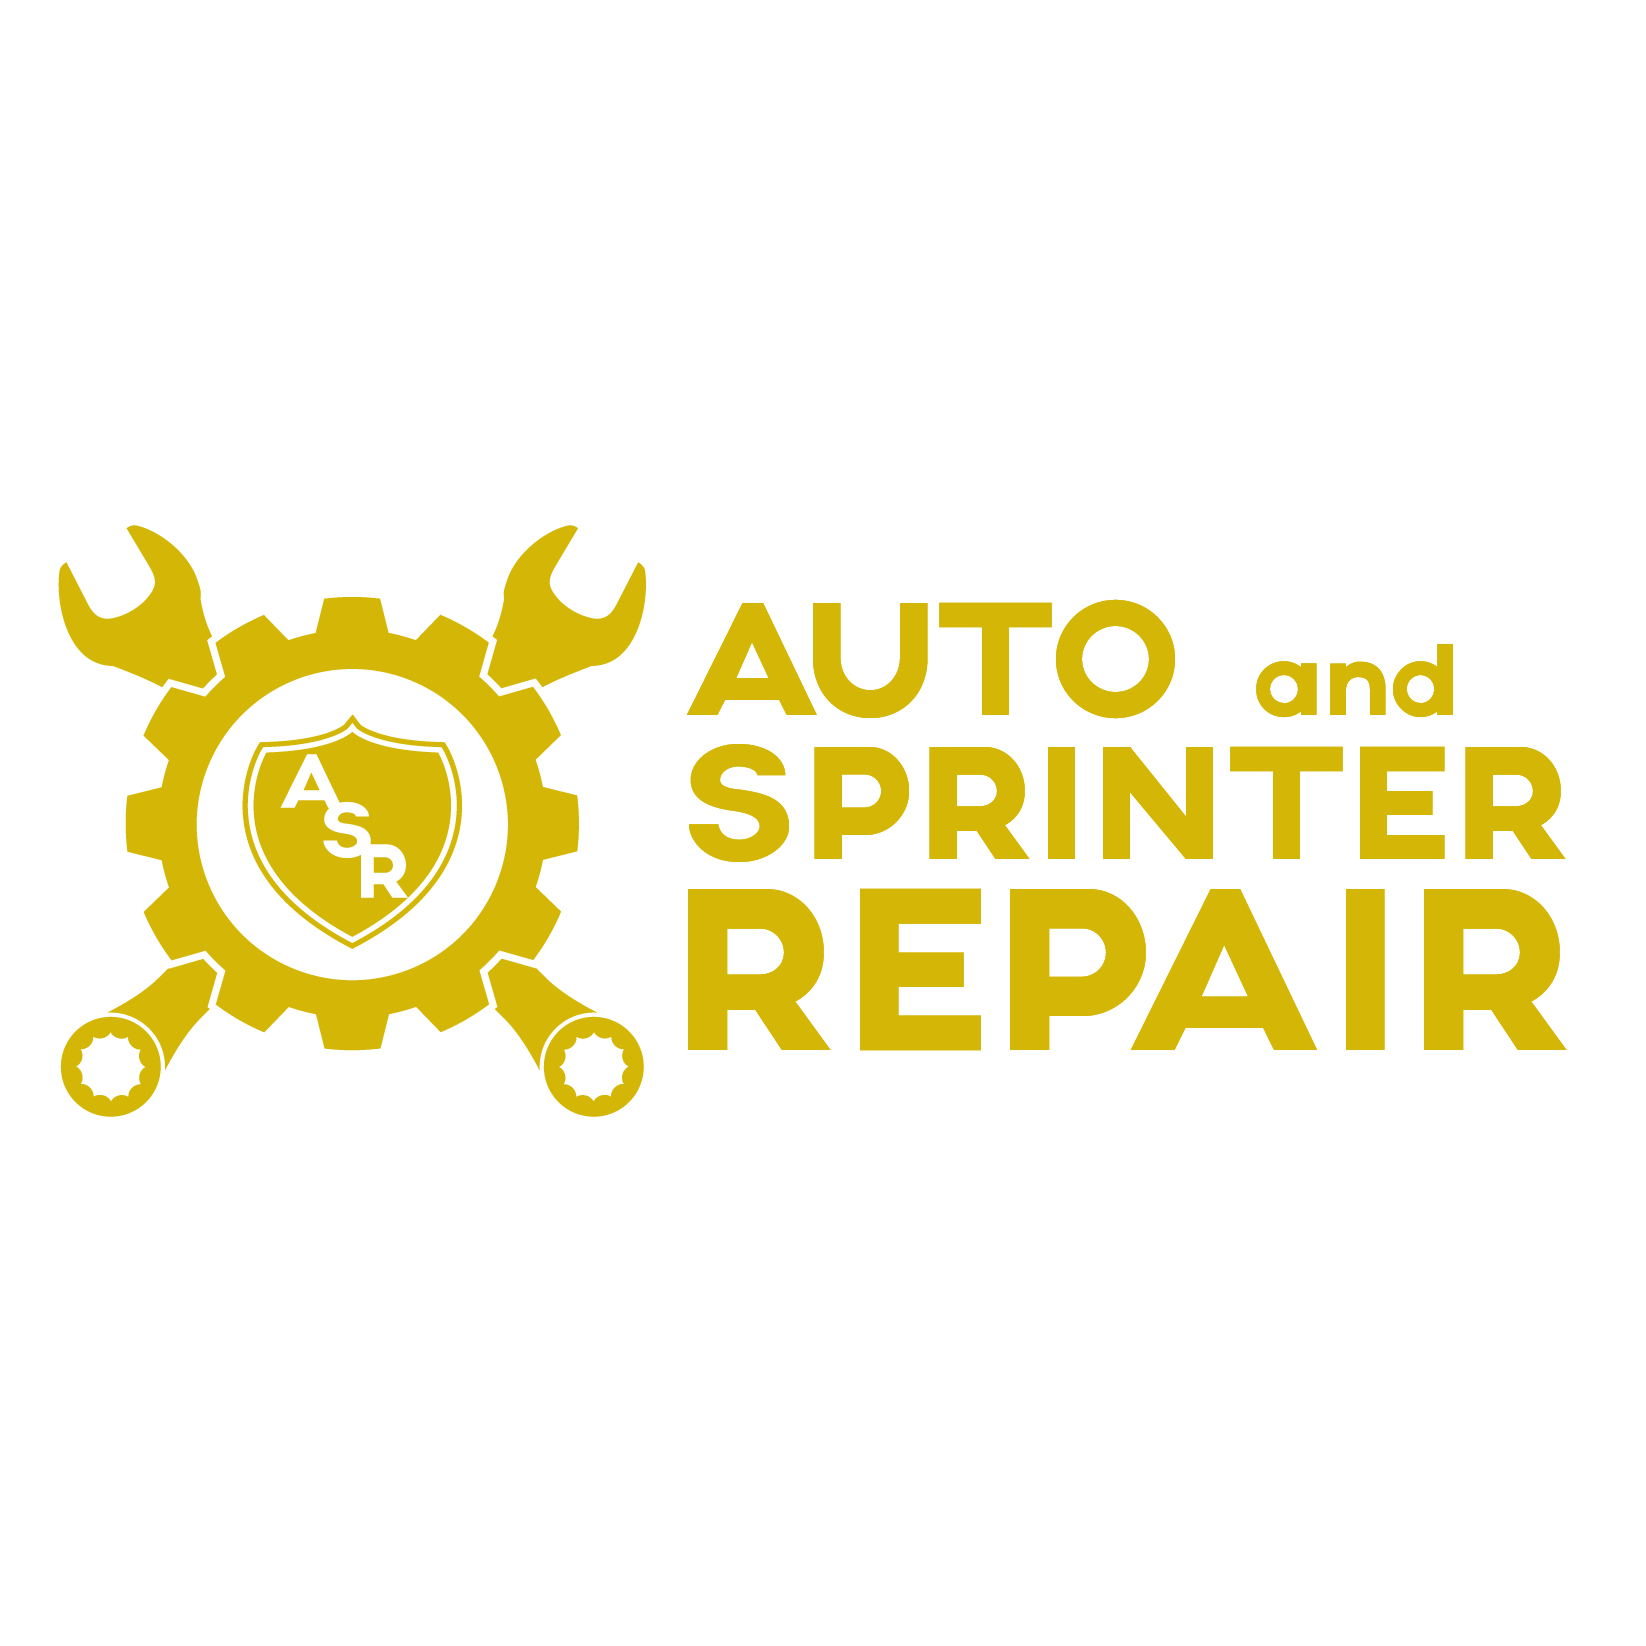 Auto and Sprinter Repair